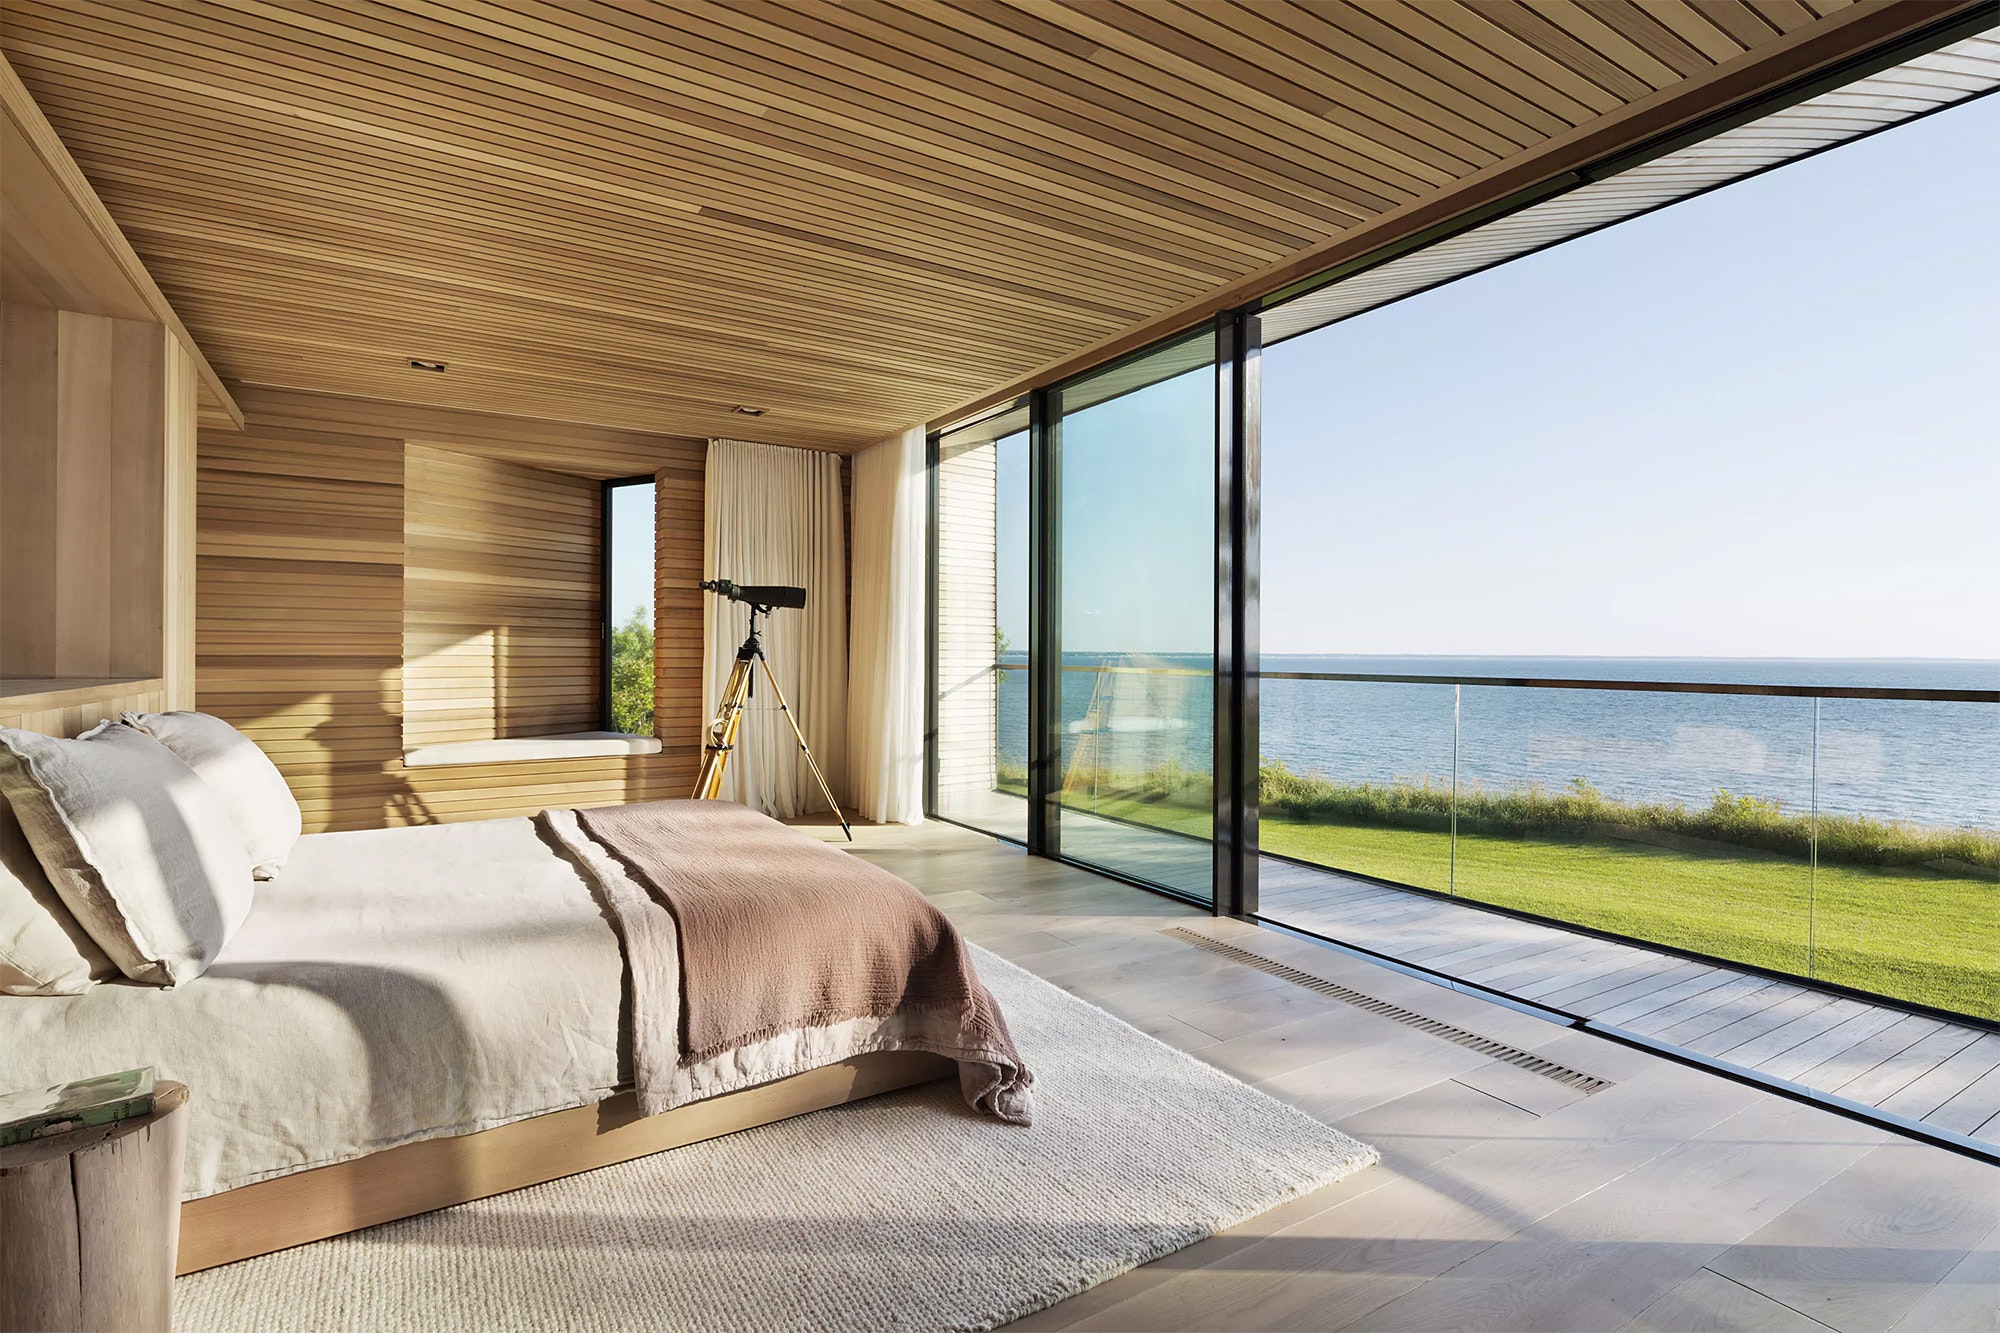 House In Peconic Bay, NY By Mapos Architects, DPC